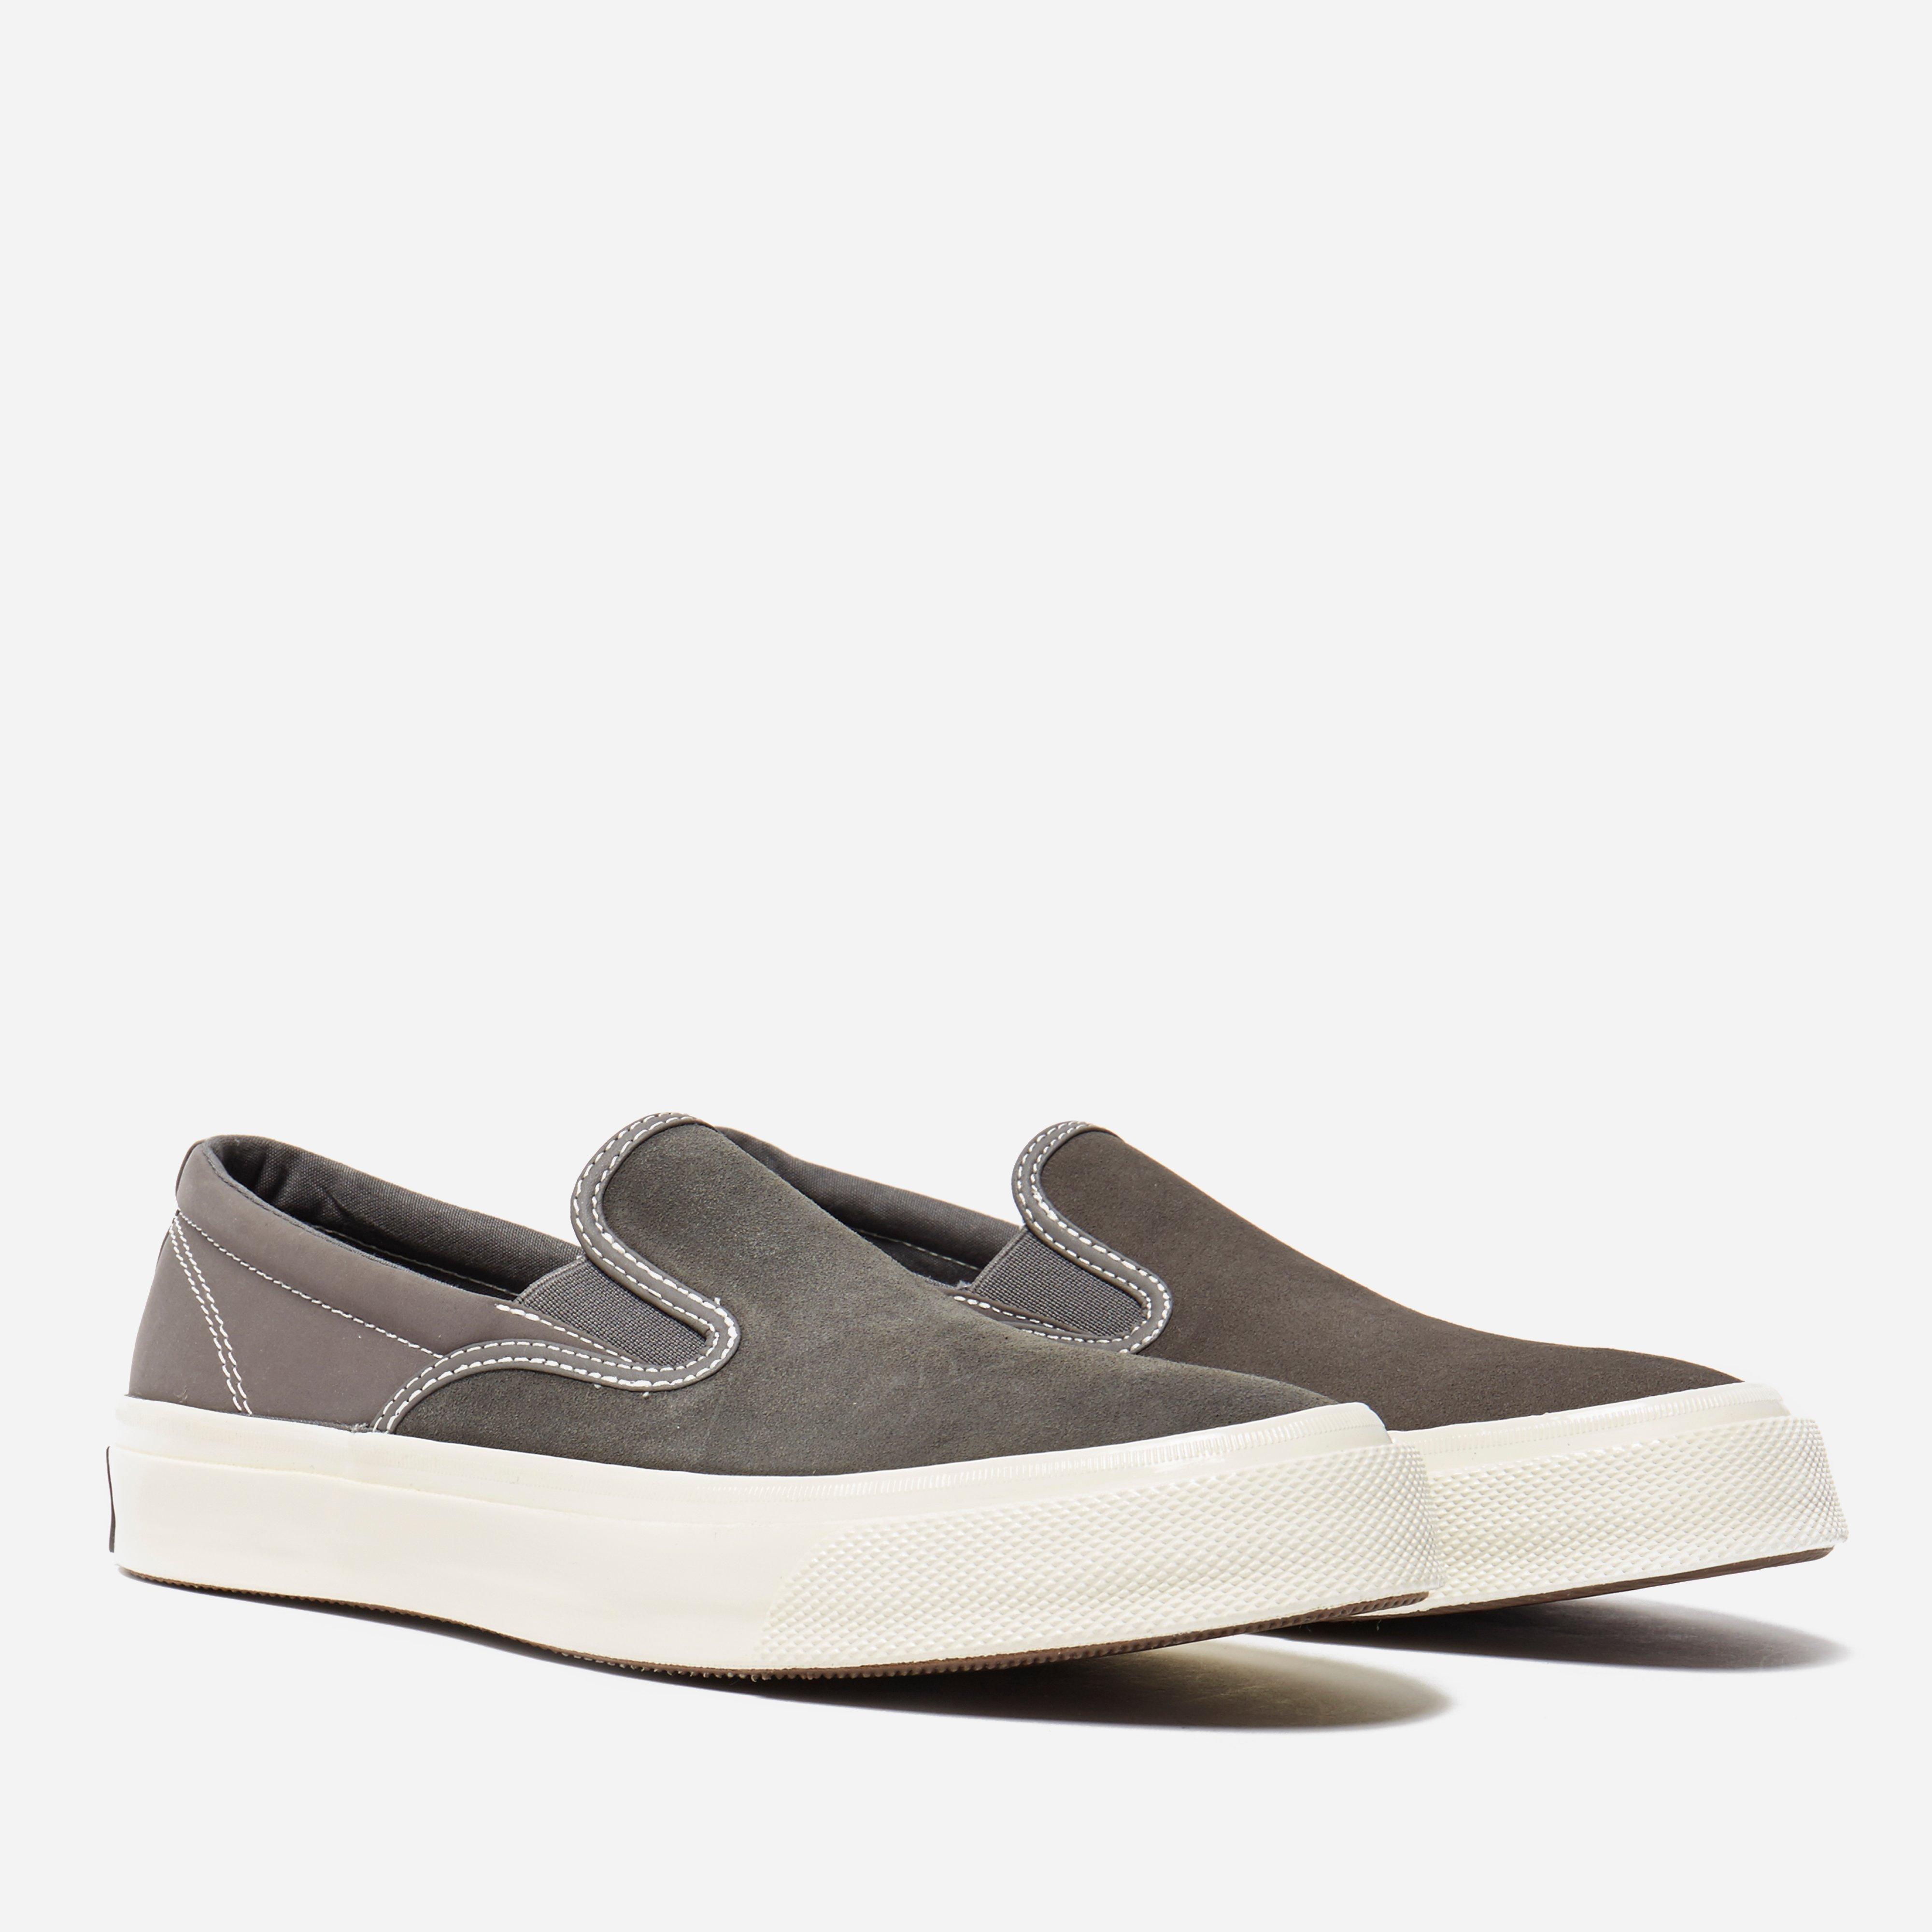 Converse All Star Deck Star 67 Slip On